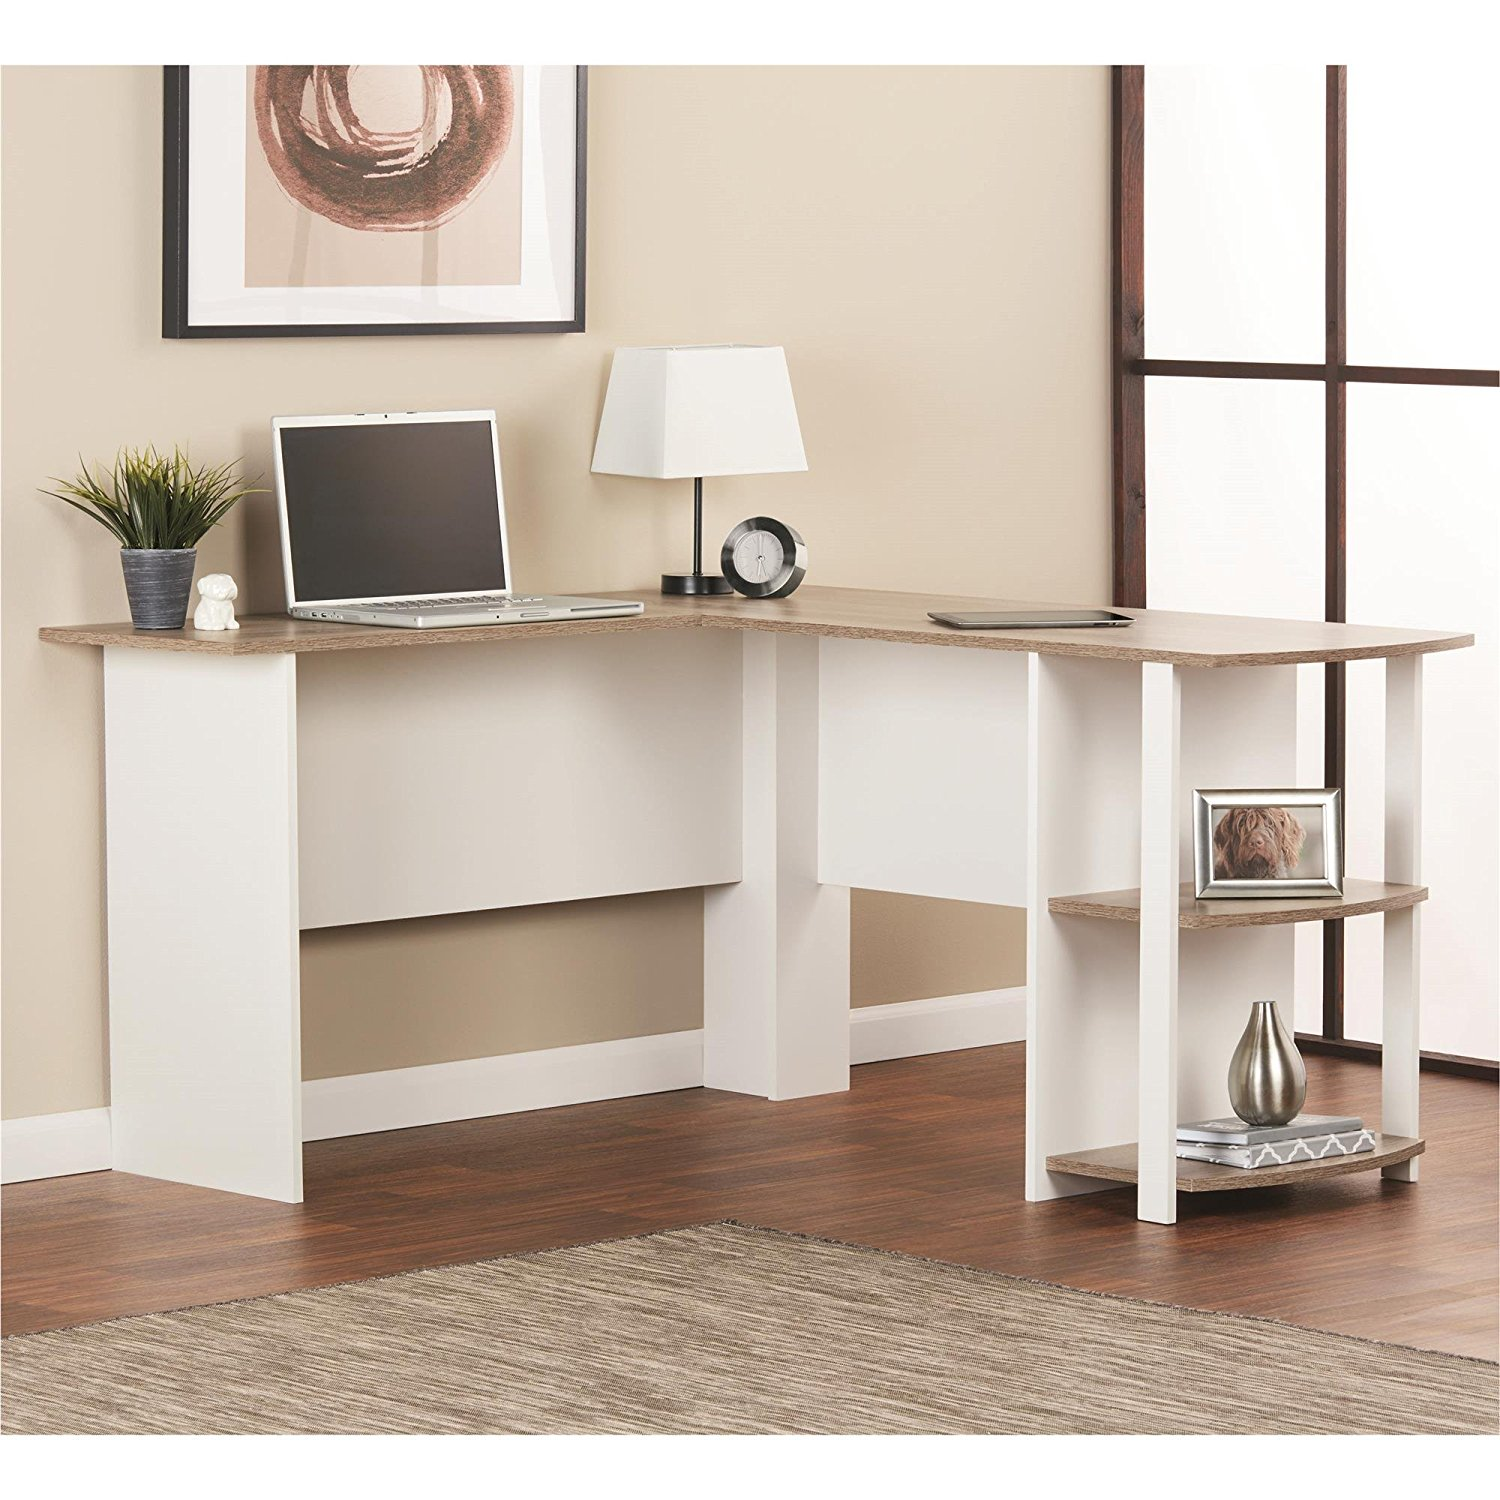 This Is A Beautiful Desk That Very Cozy Looking And Also Sy One Of Biggest Ing Point The Its